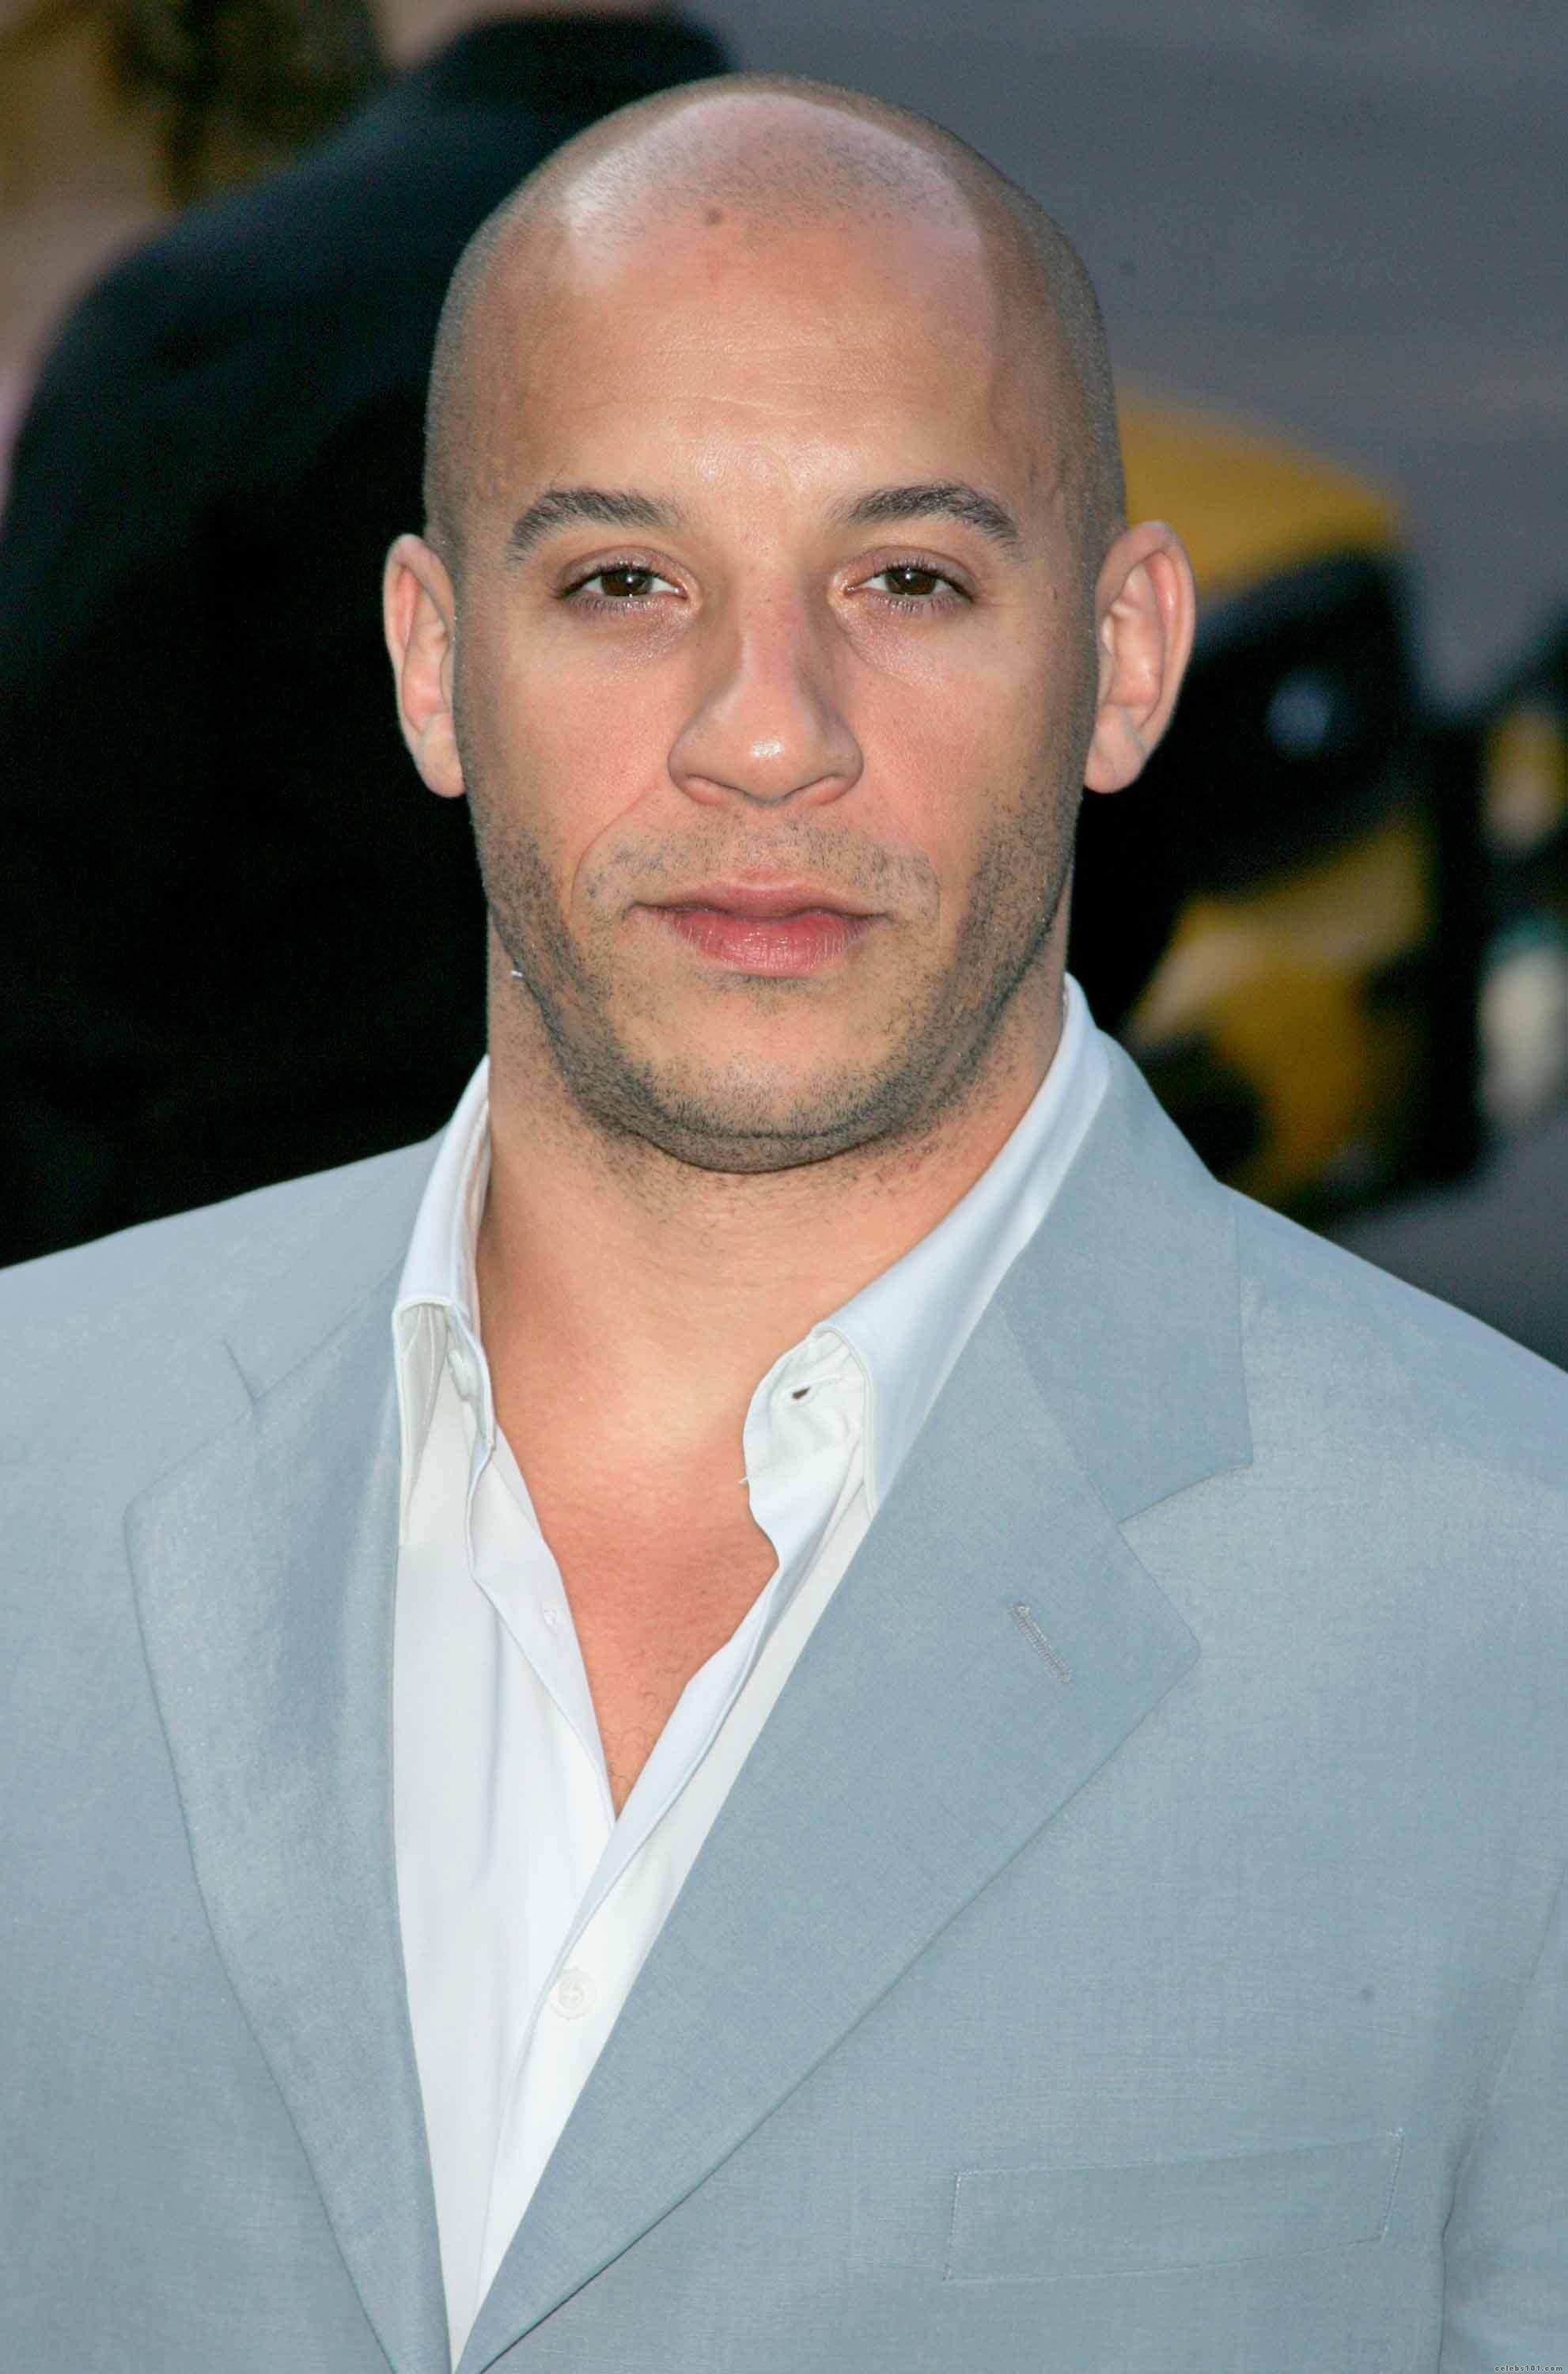 vin diesel Vin diesel is an actor known for the fast and furious franchise the action star's real name is mark sinclair and he was born on july 18, 1967 in california to a single mom, delora sherleen.